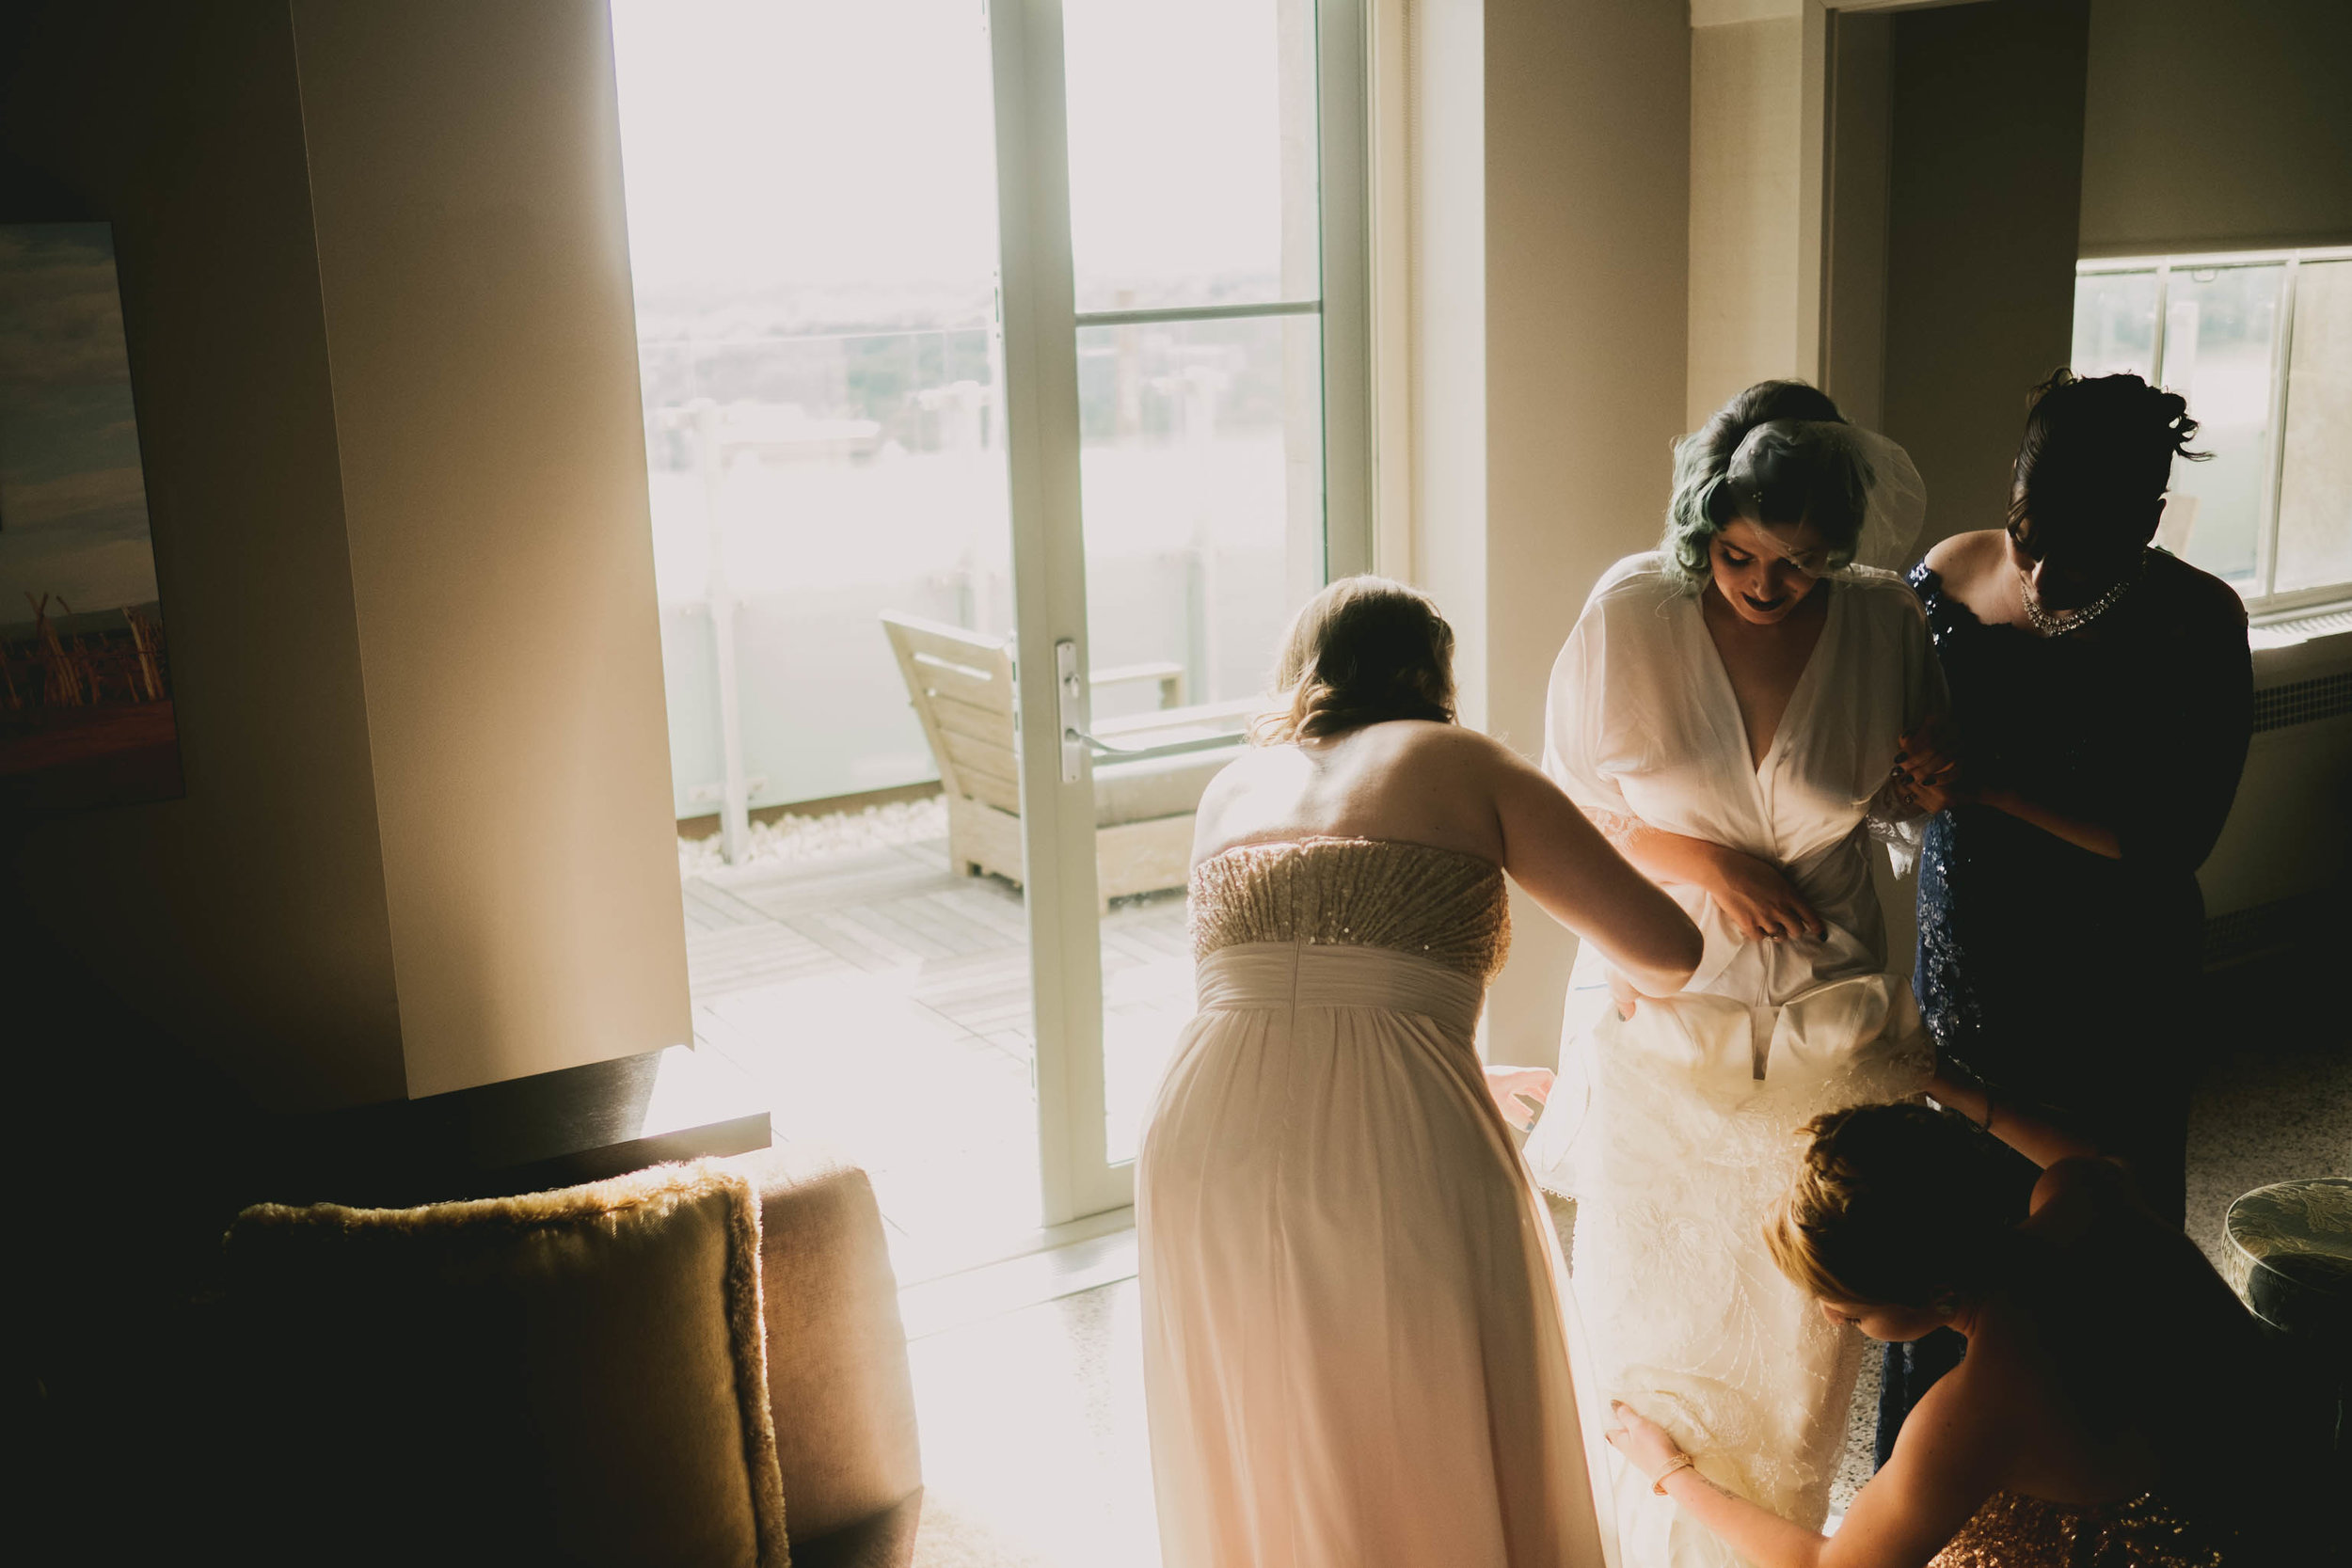 21c-hotel-durham-offbeat-wedding-bride-gettting-into-dress.jpg